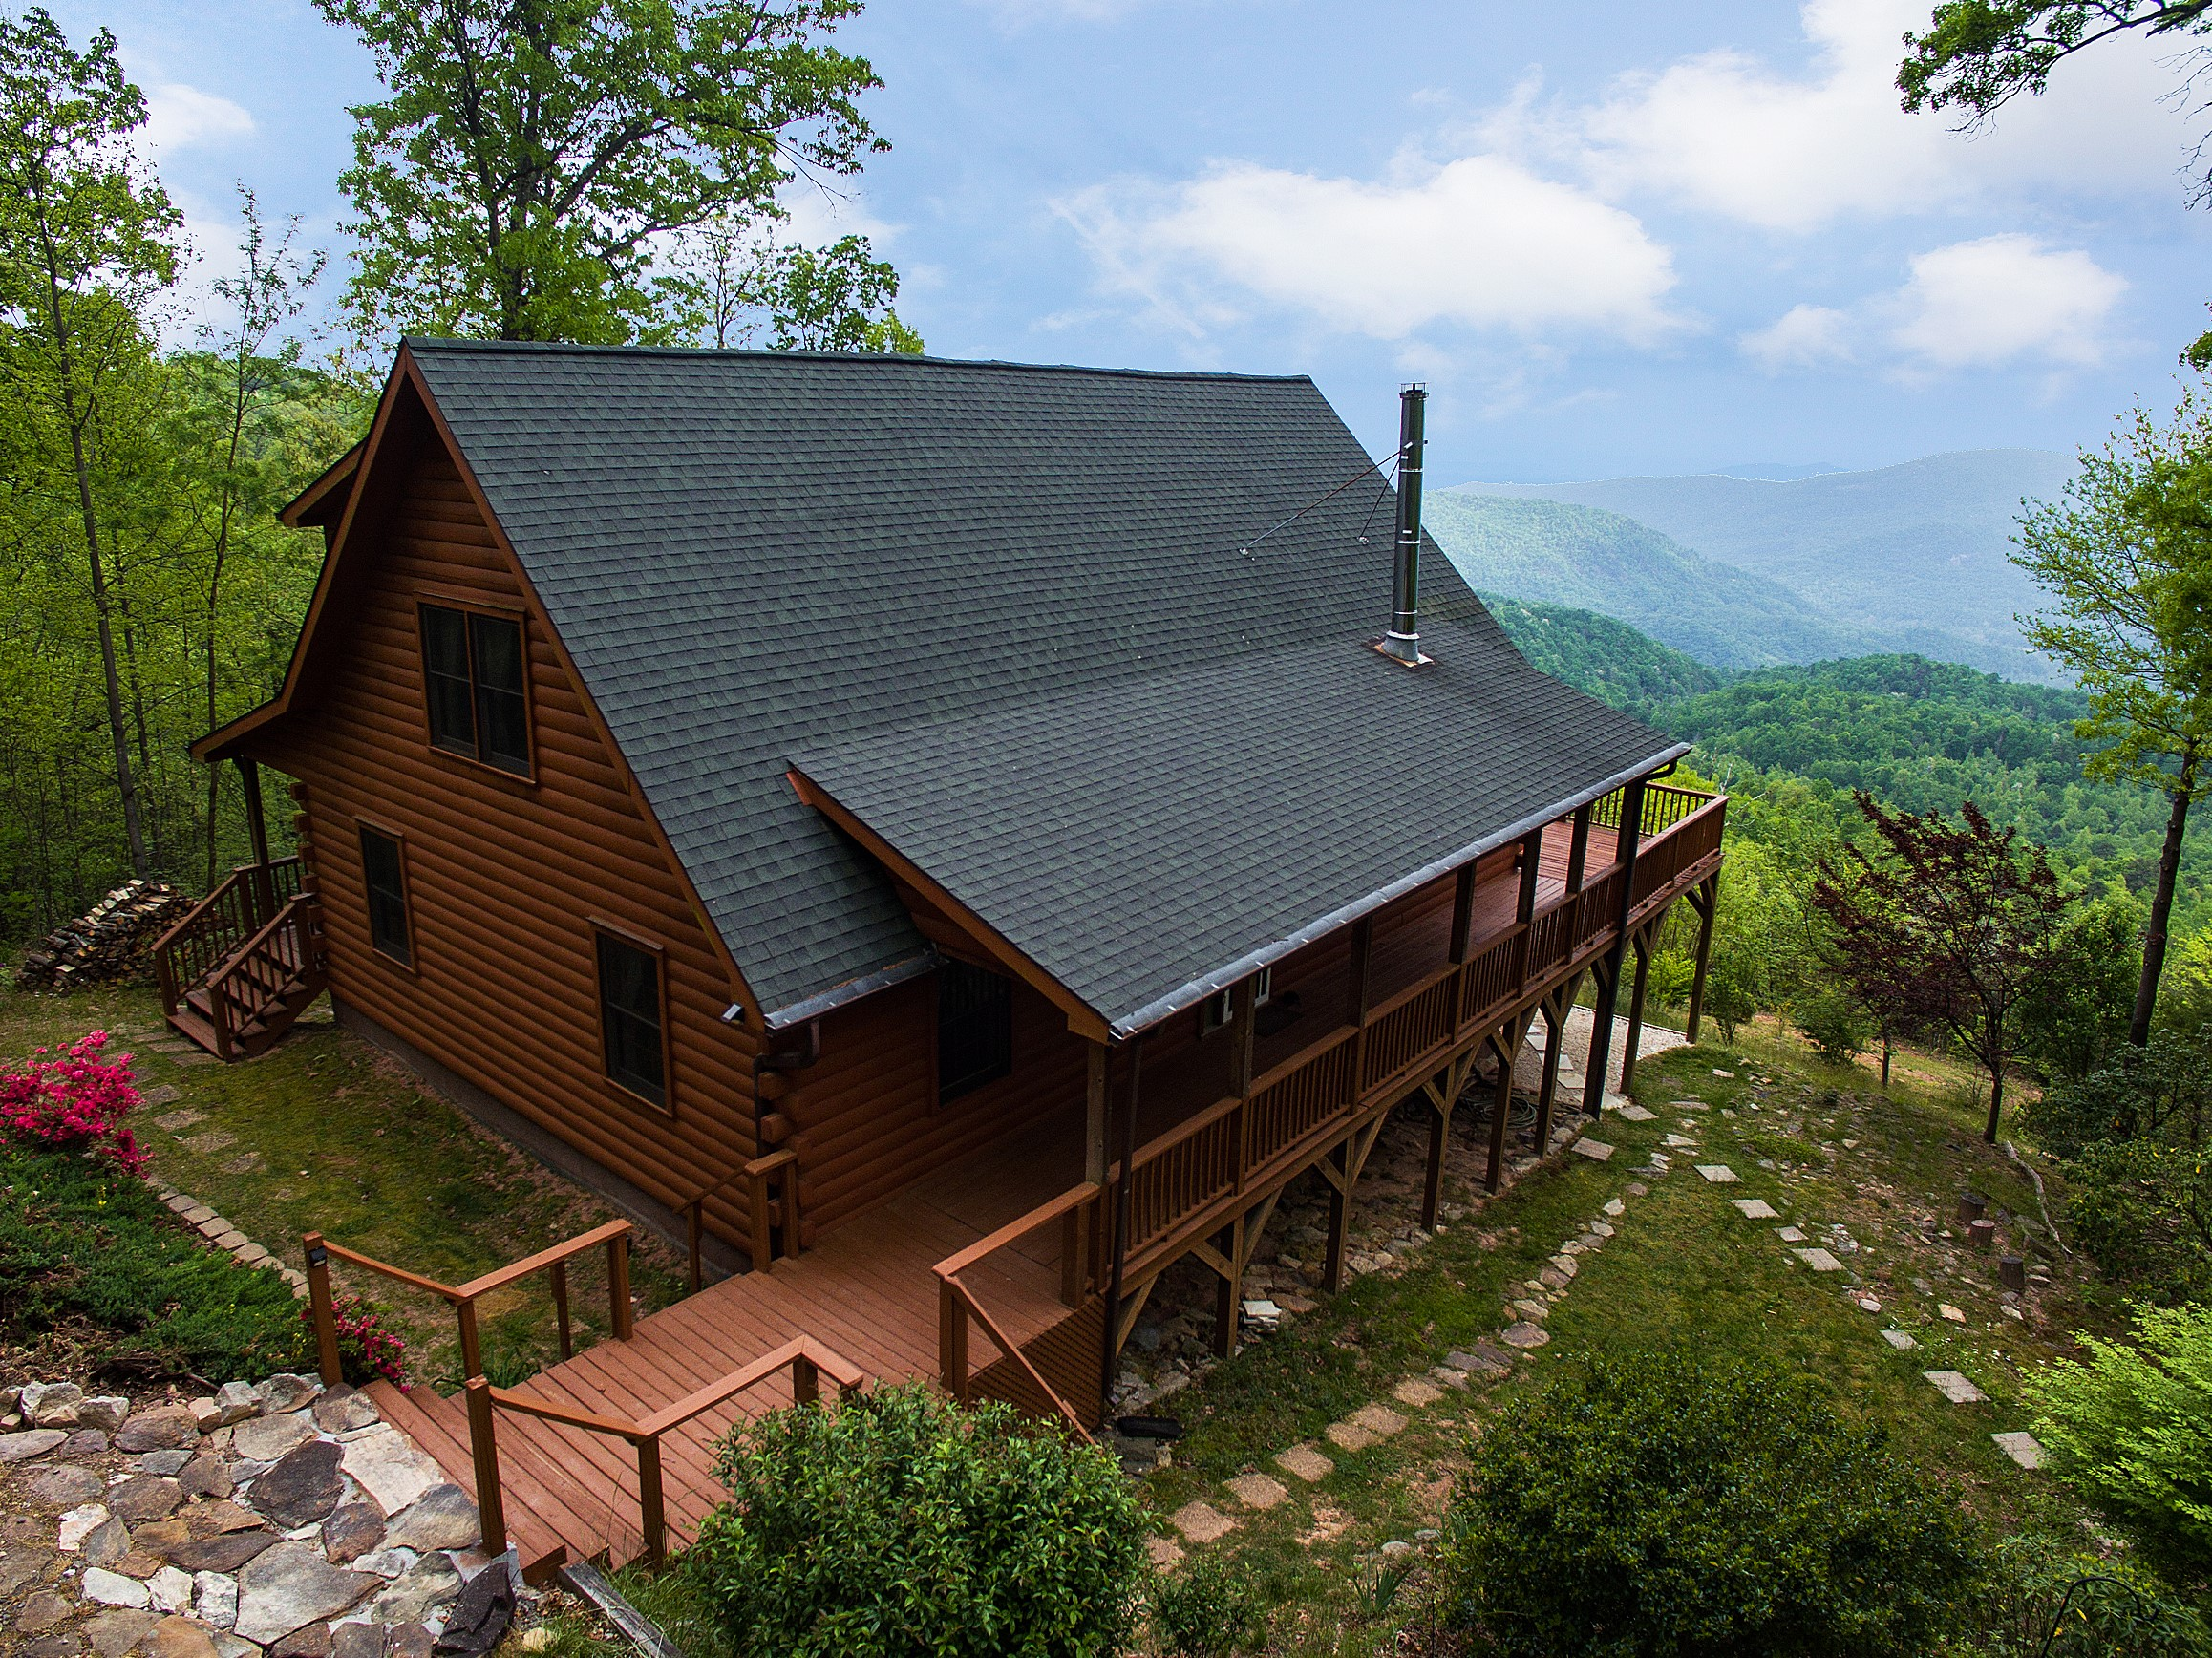 rentals vacation bedrooms engelholf wnc lodge asheville nc cabins mountain rental